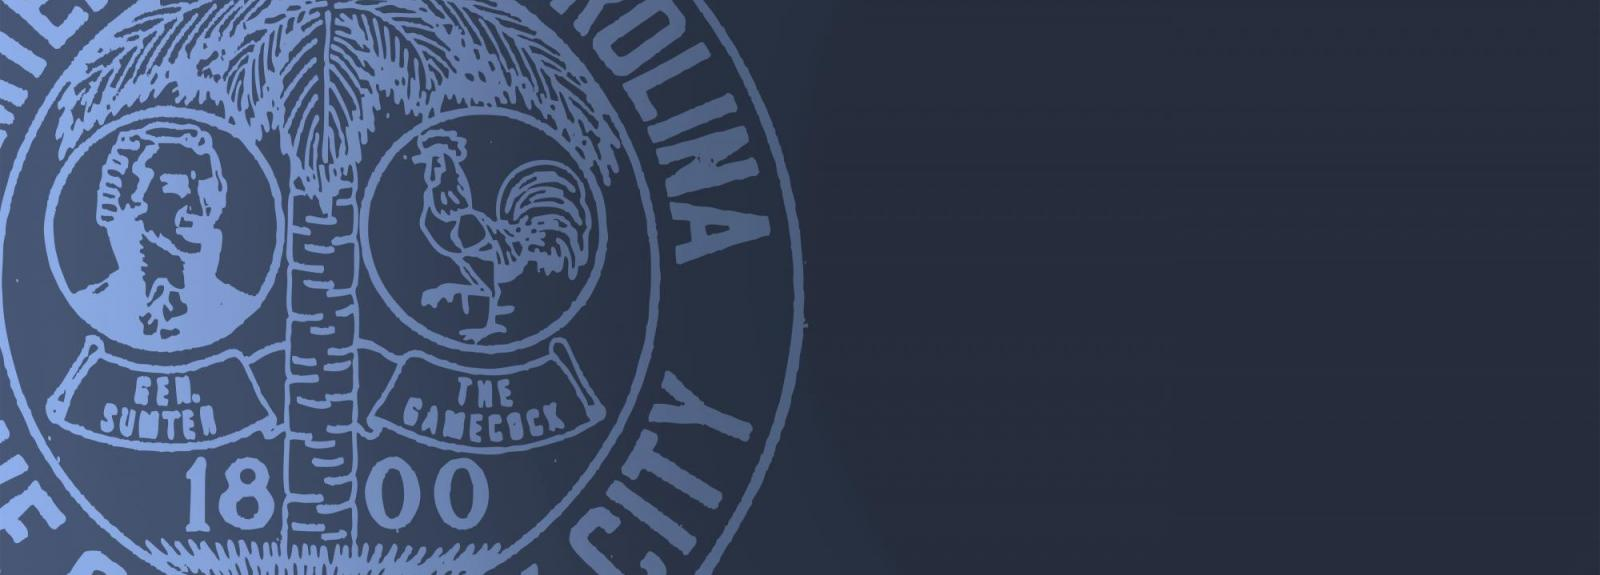 City Seal on Blue Background